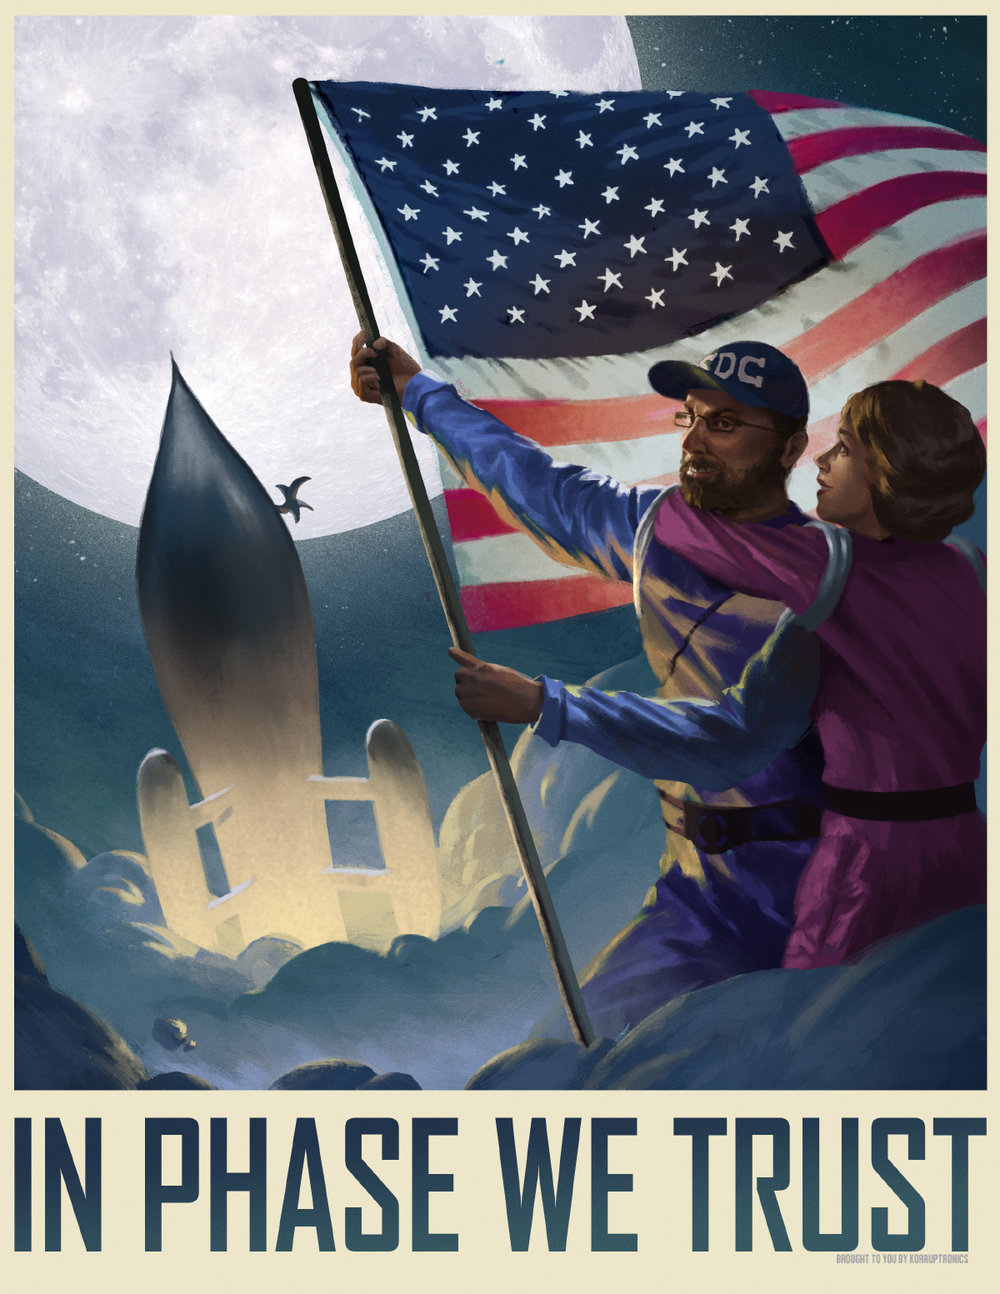 In Phase We Trust by  Steve Stark.   https://i-stark.com/illustration/   Inspired by a Dreamchaser Session with the We Hate Bards Podcast.